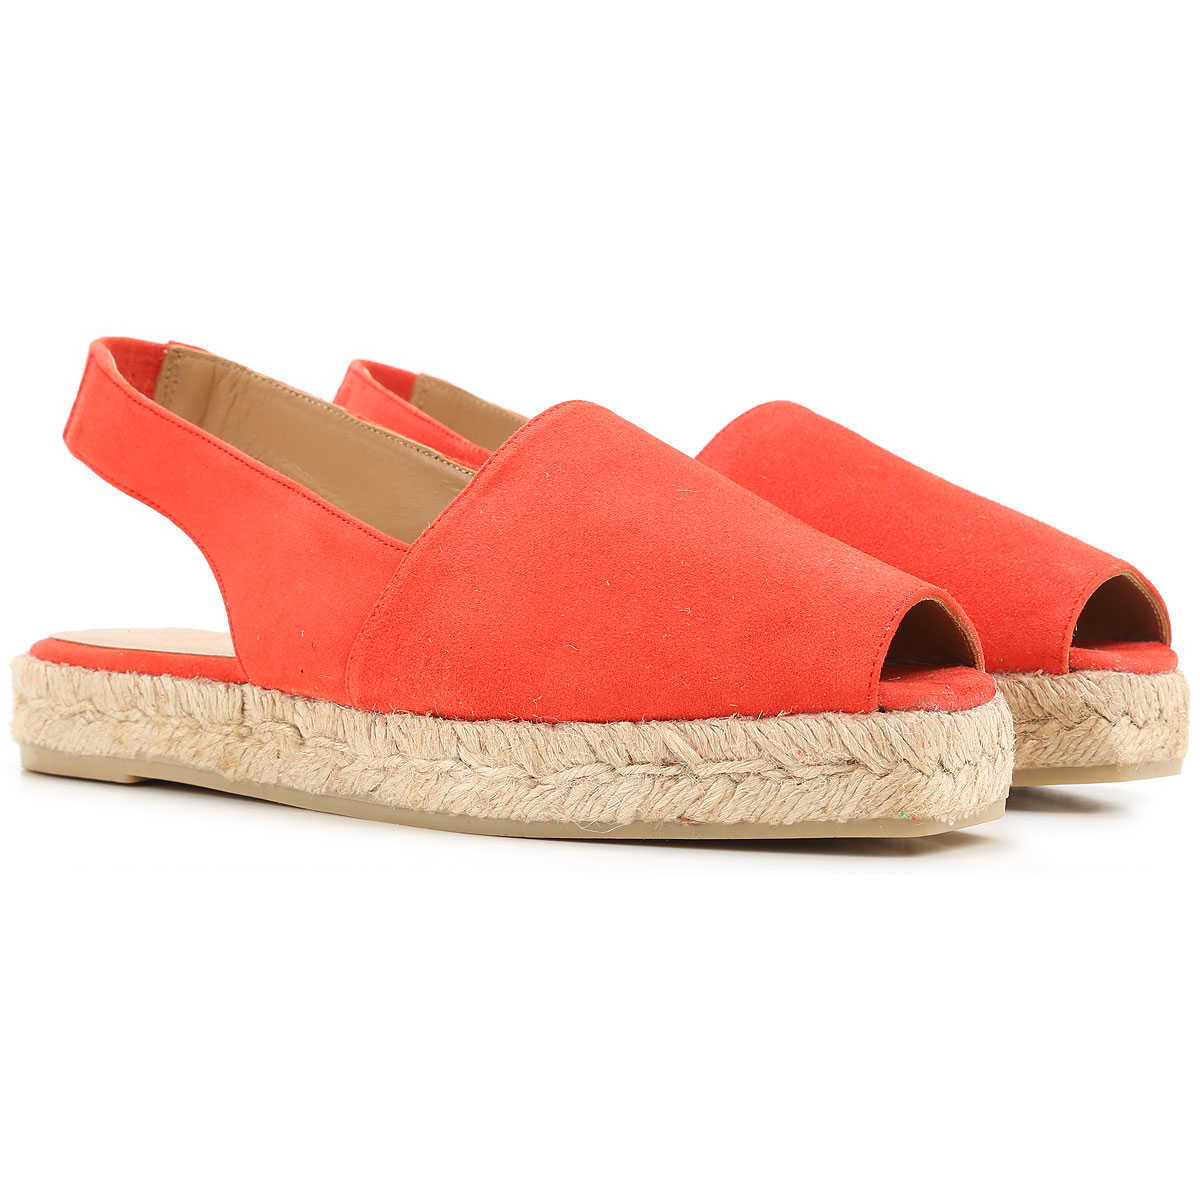 Castaner Wedges for Women in Outlet Red USA - GOOFASH